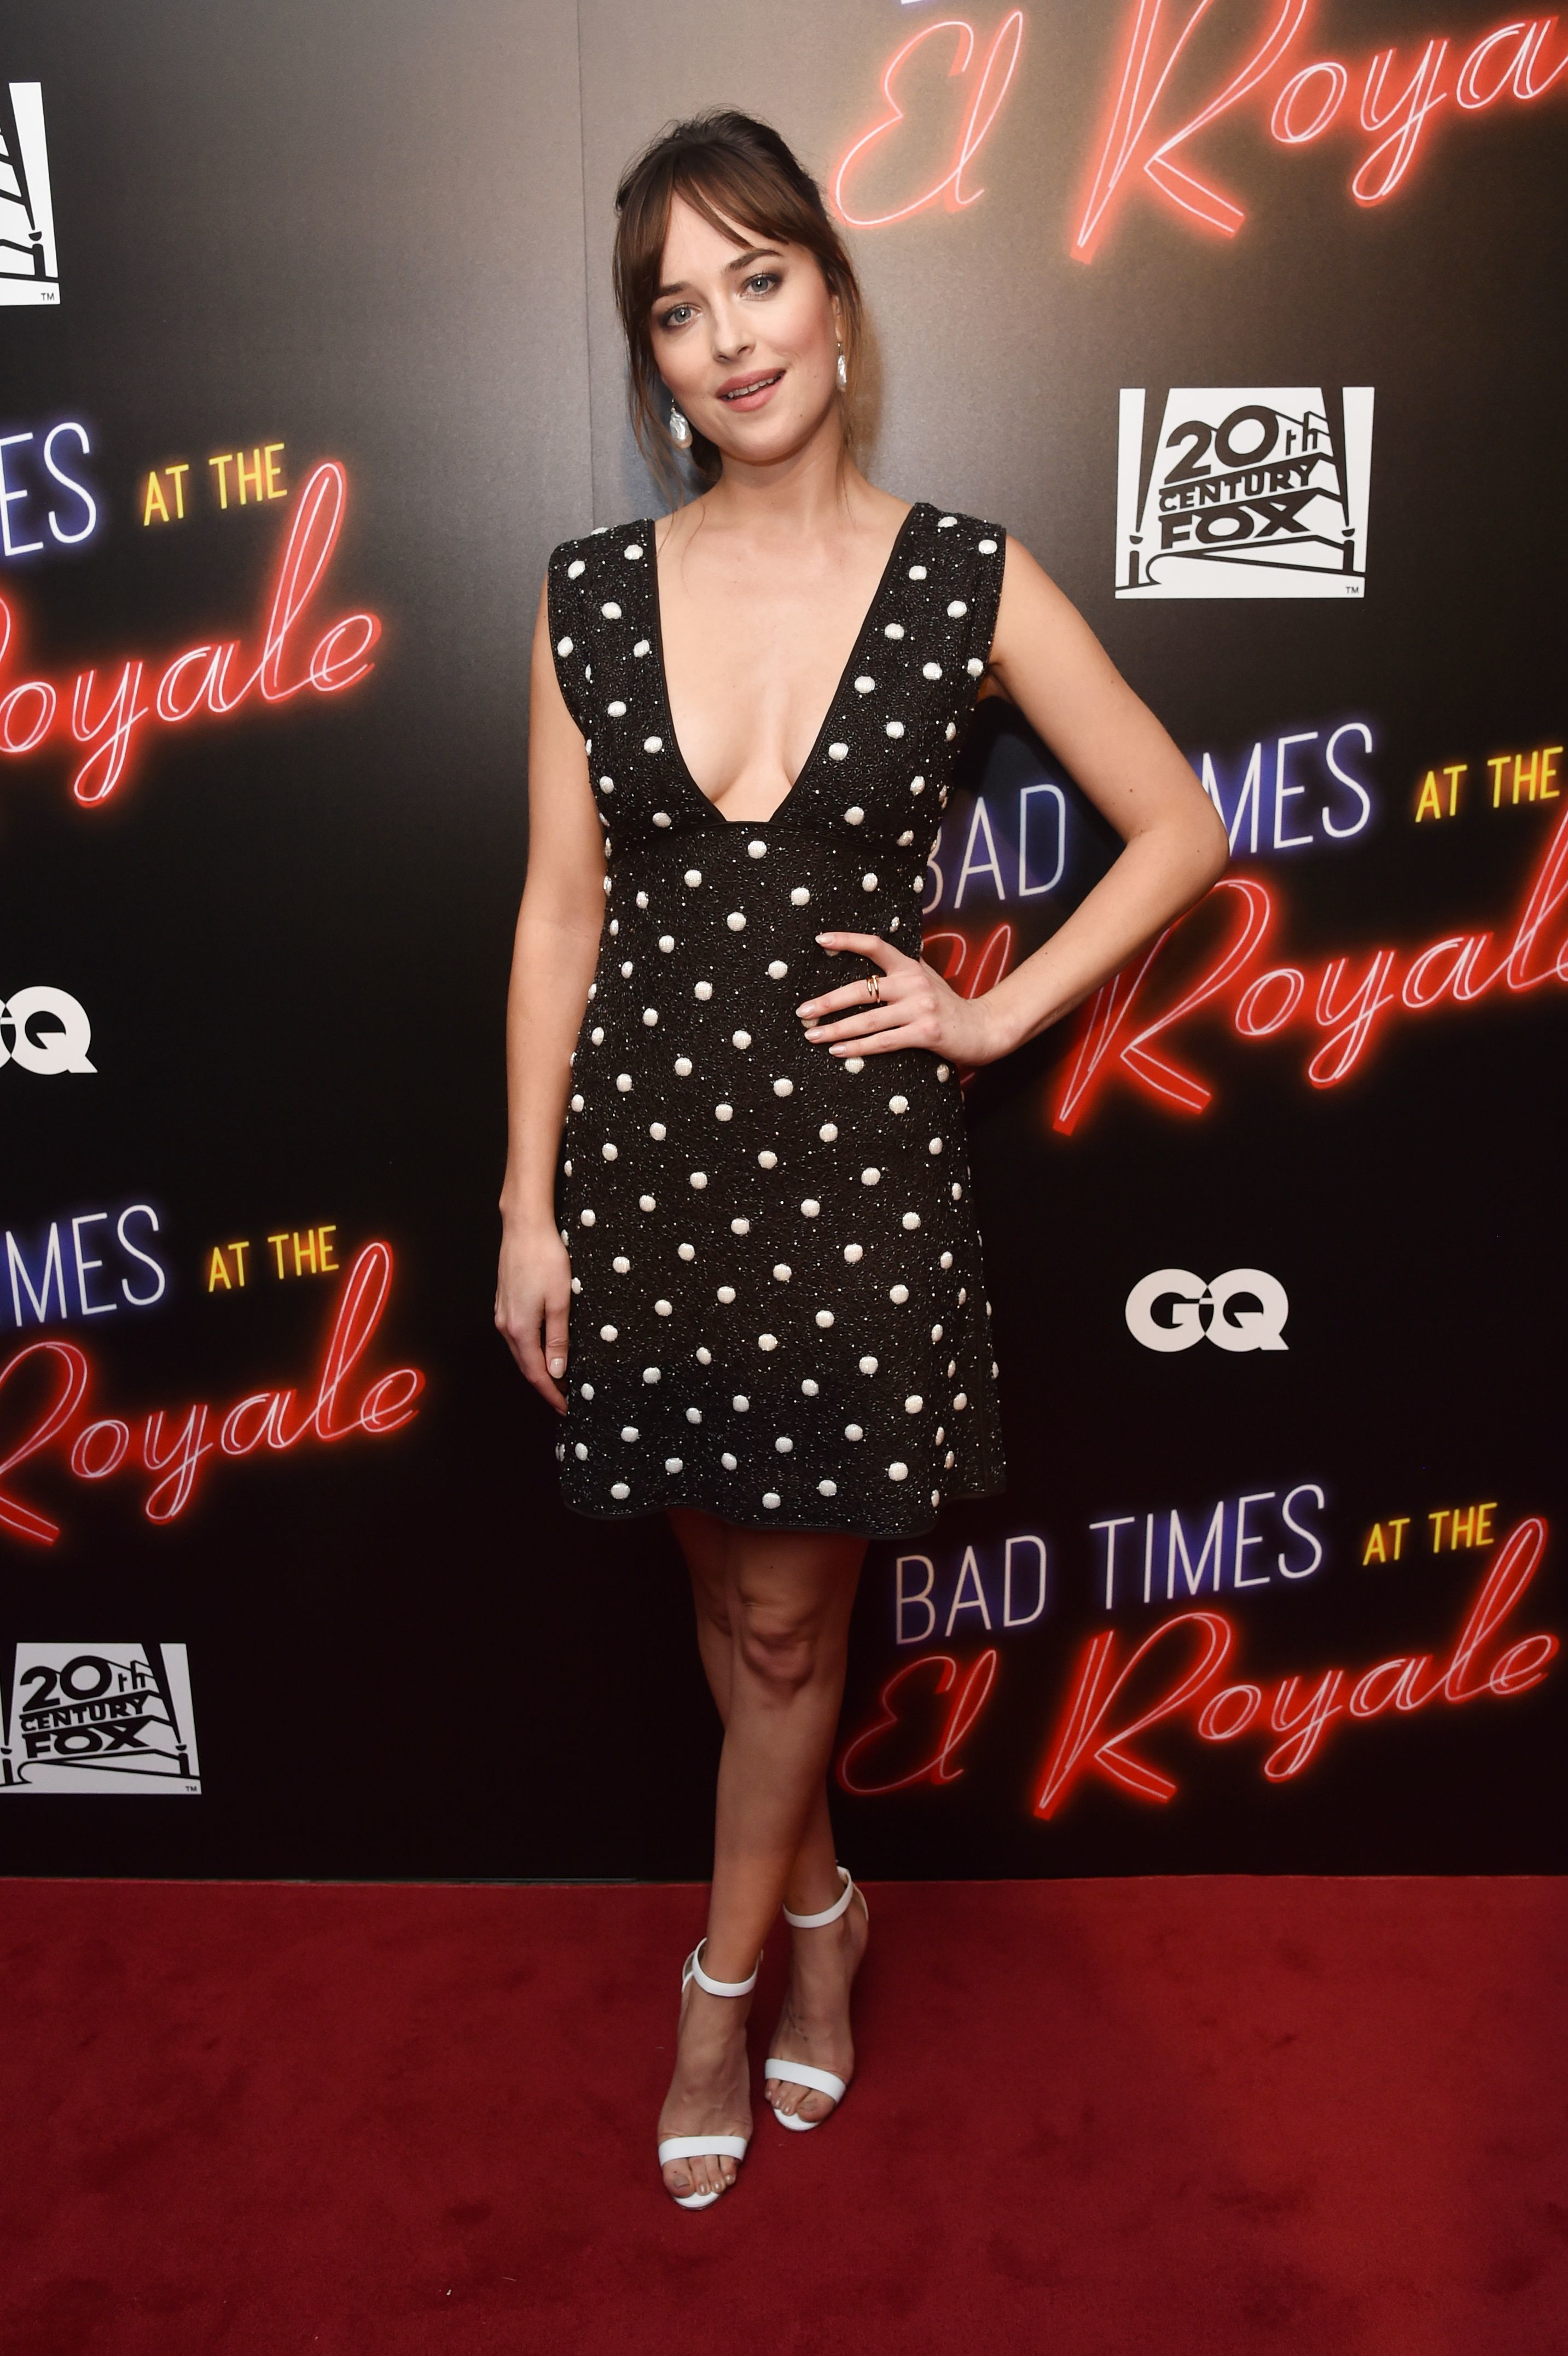 Week In Celebrity Photos For Sept 24 28 Gallery